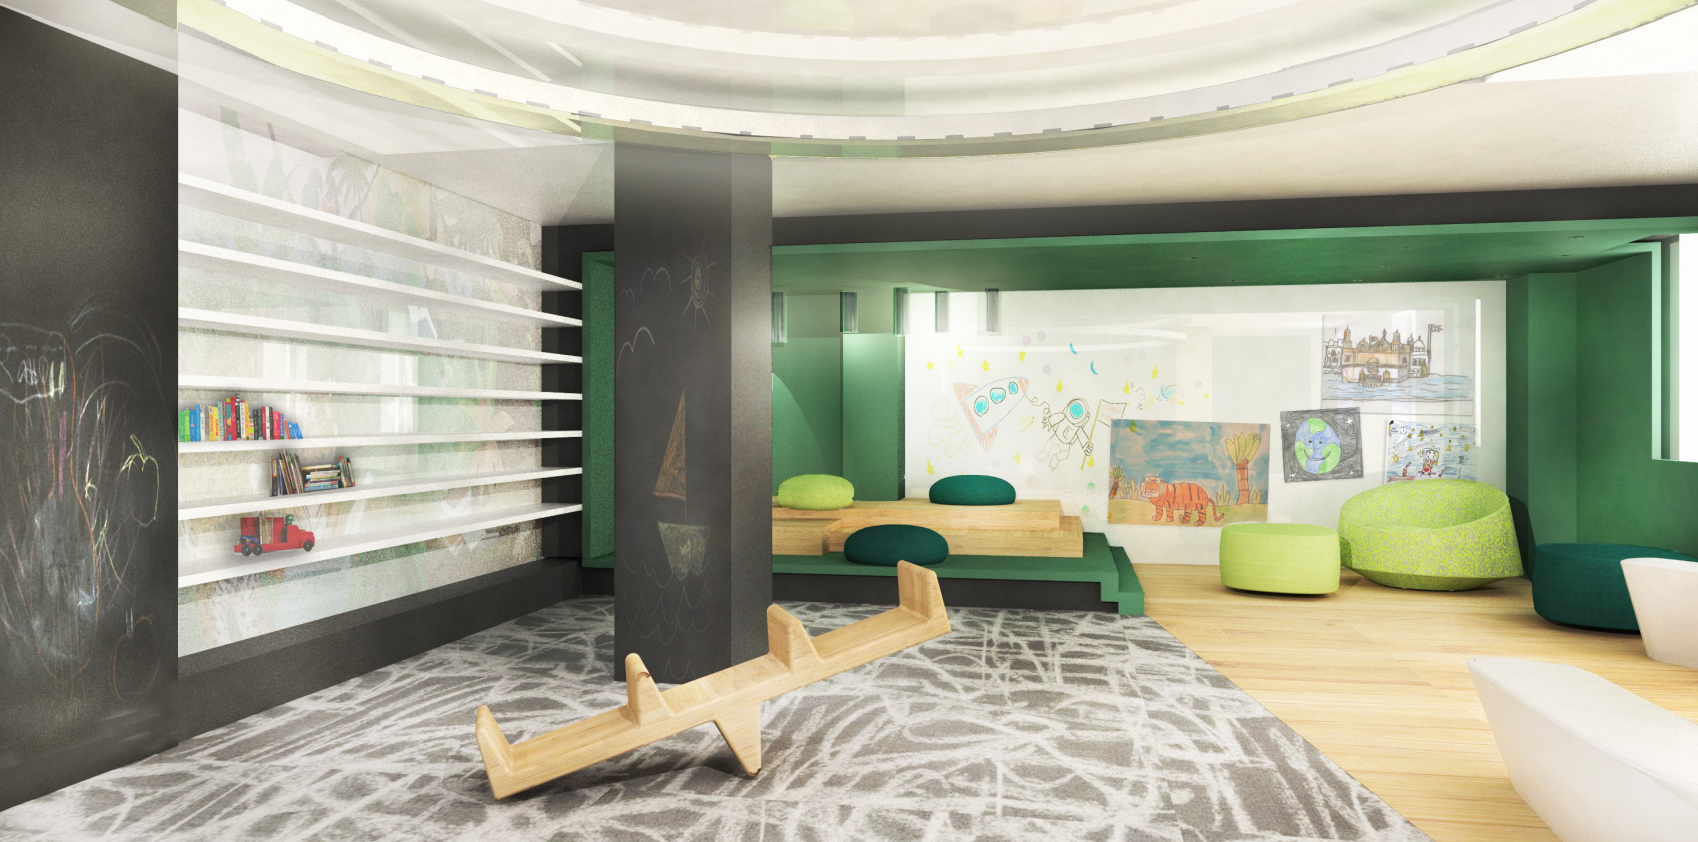 Playroom at 38 Sixth Avenue, rendering by SHoP Architects